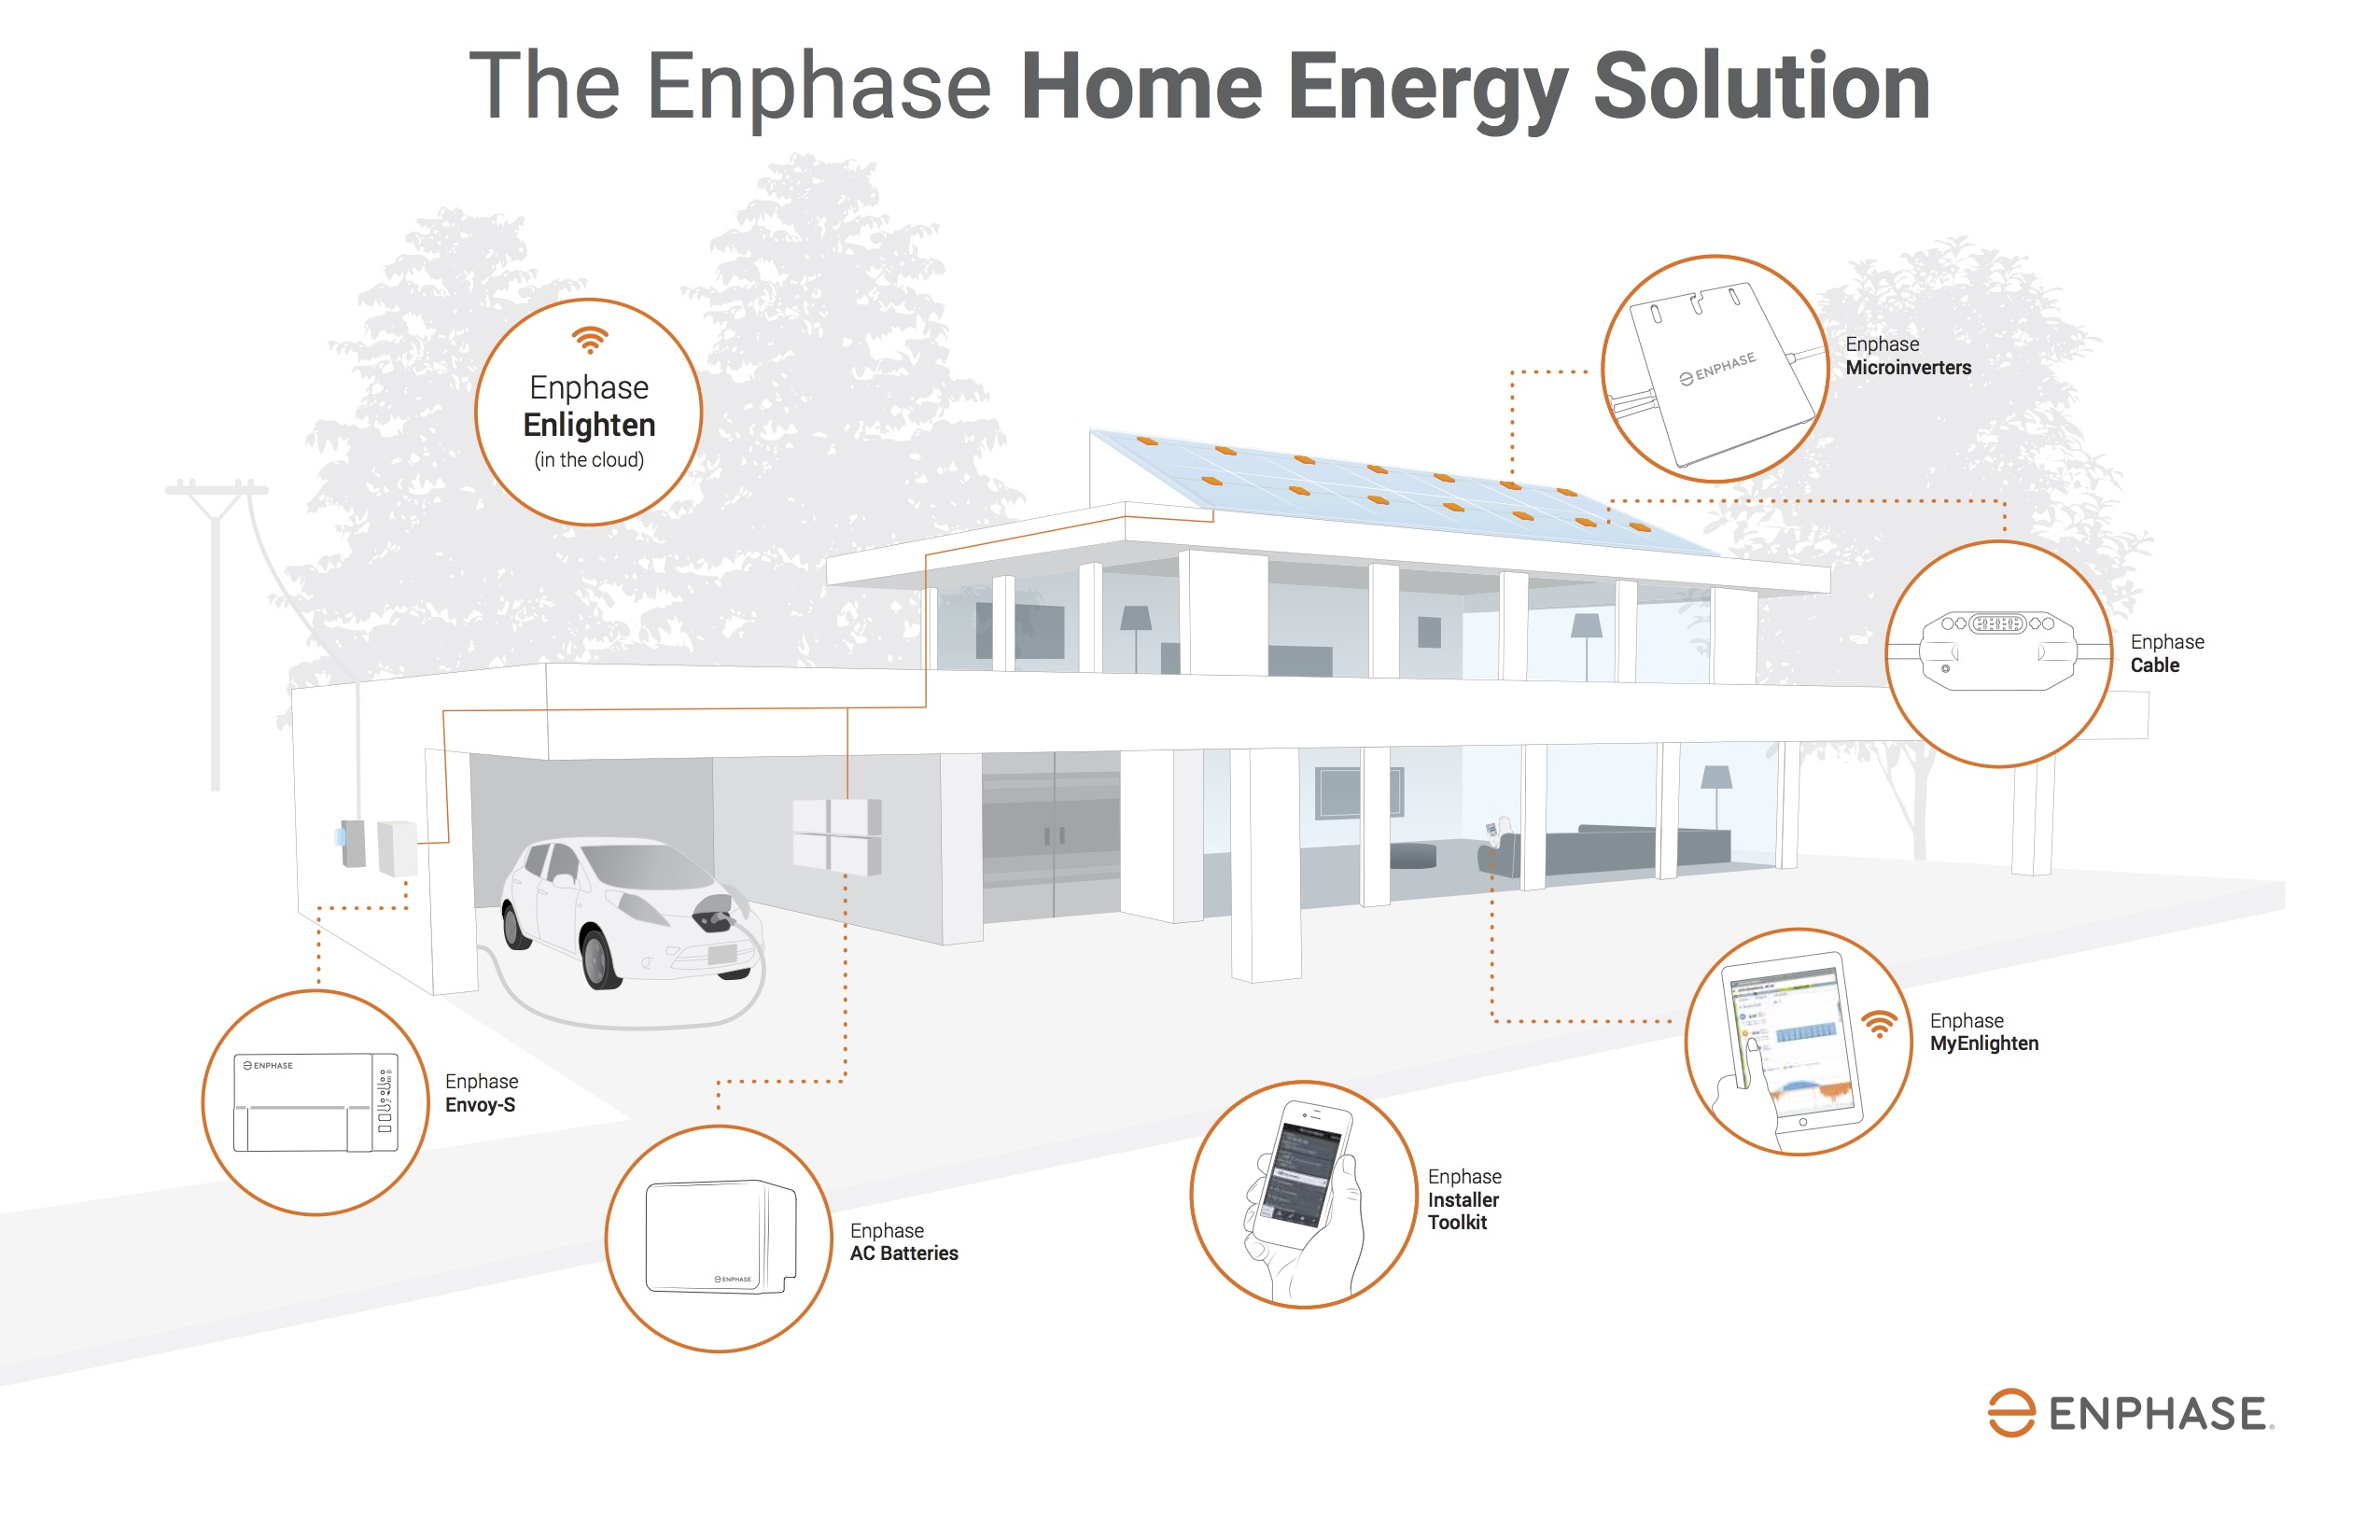 Enphase_HES House_installer